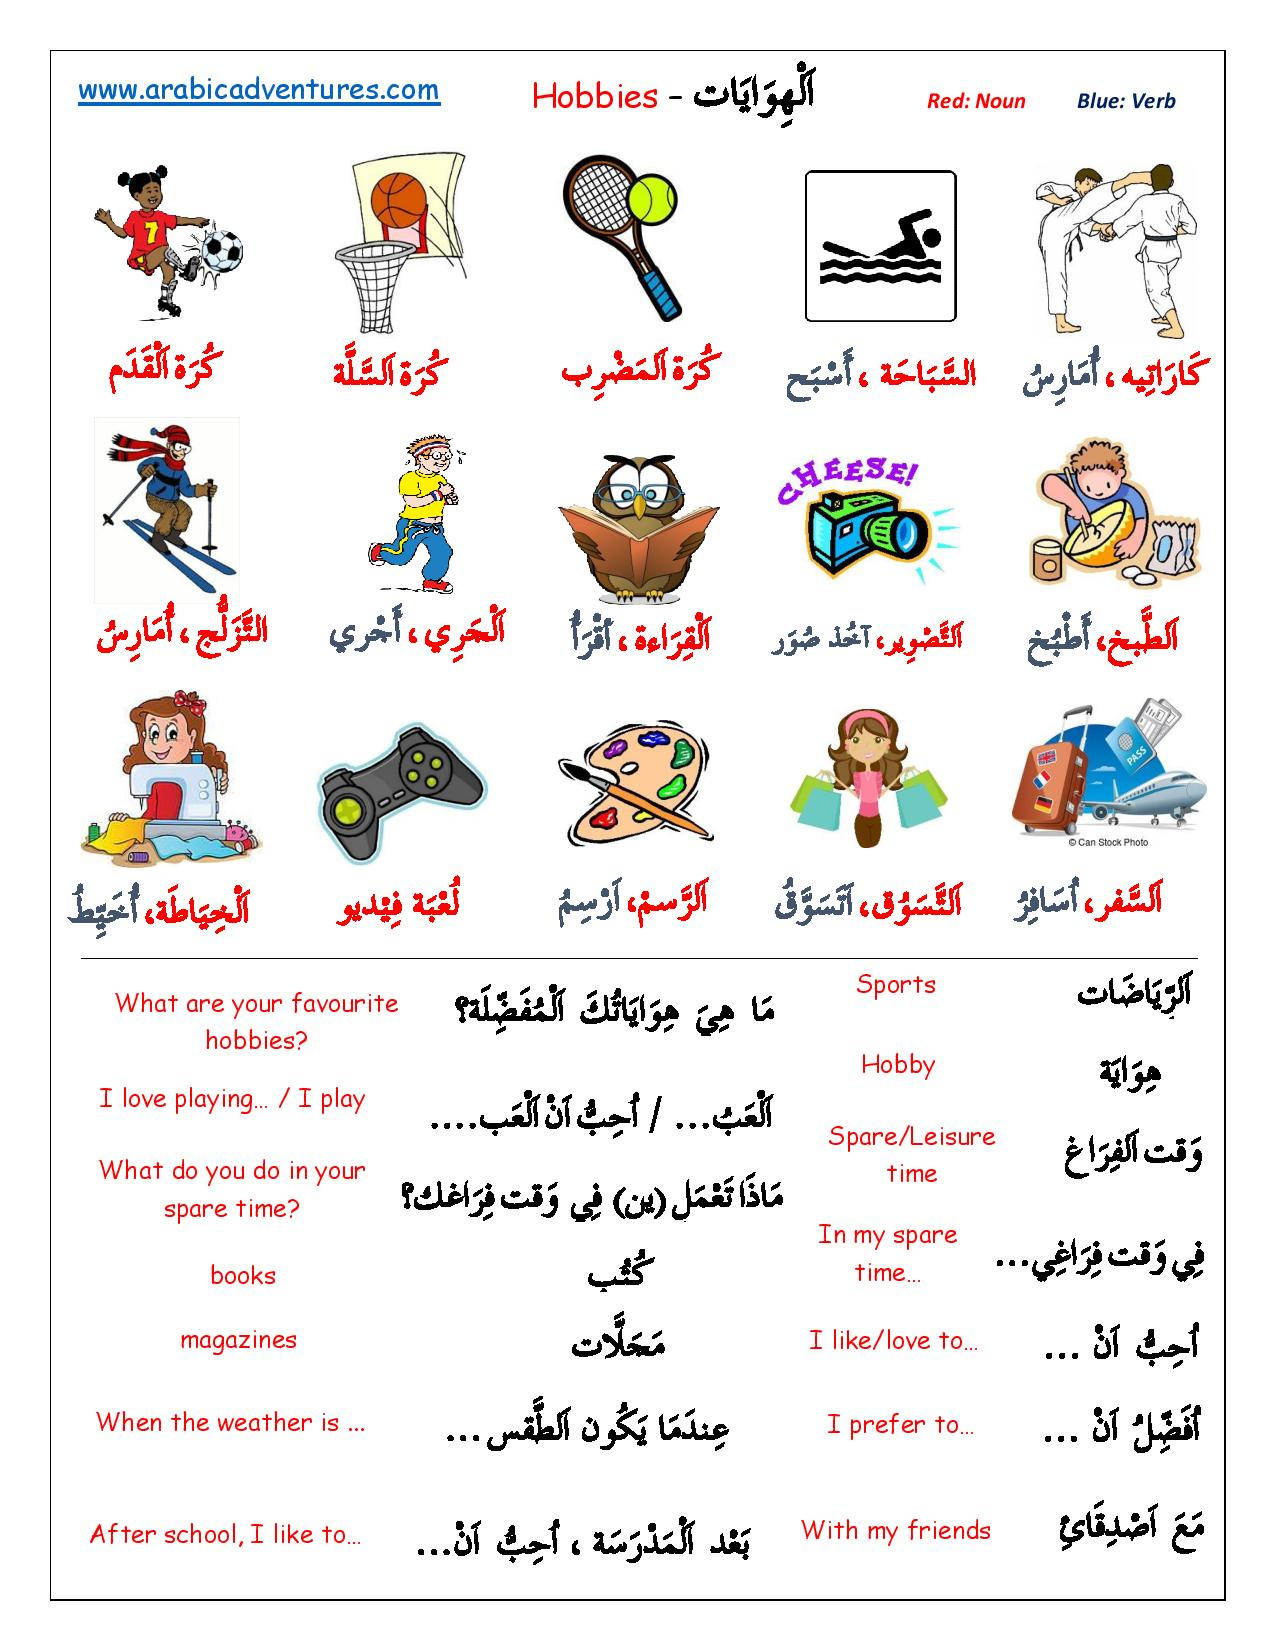 spoken-arabic-hobbies-page-001.jpg